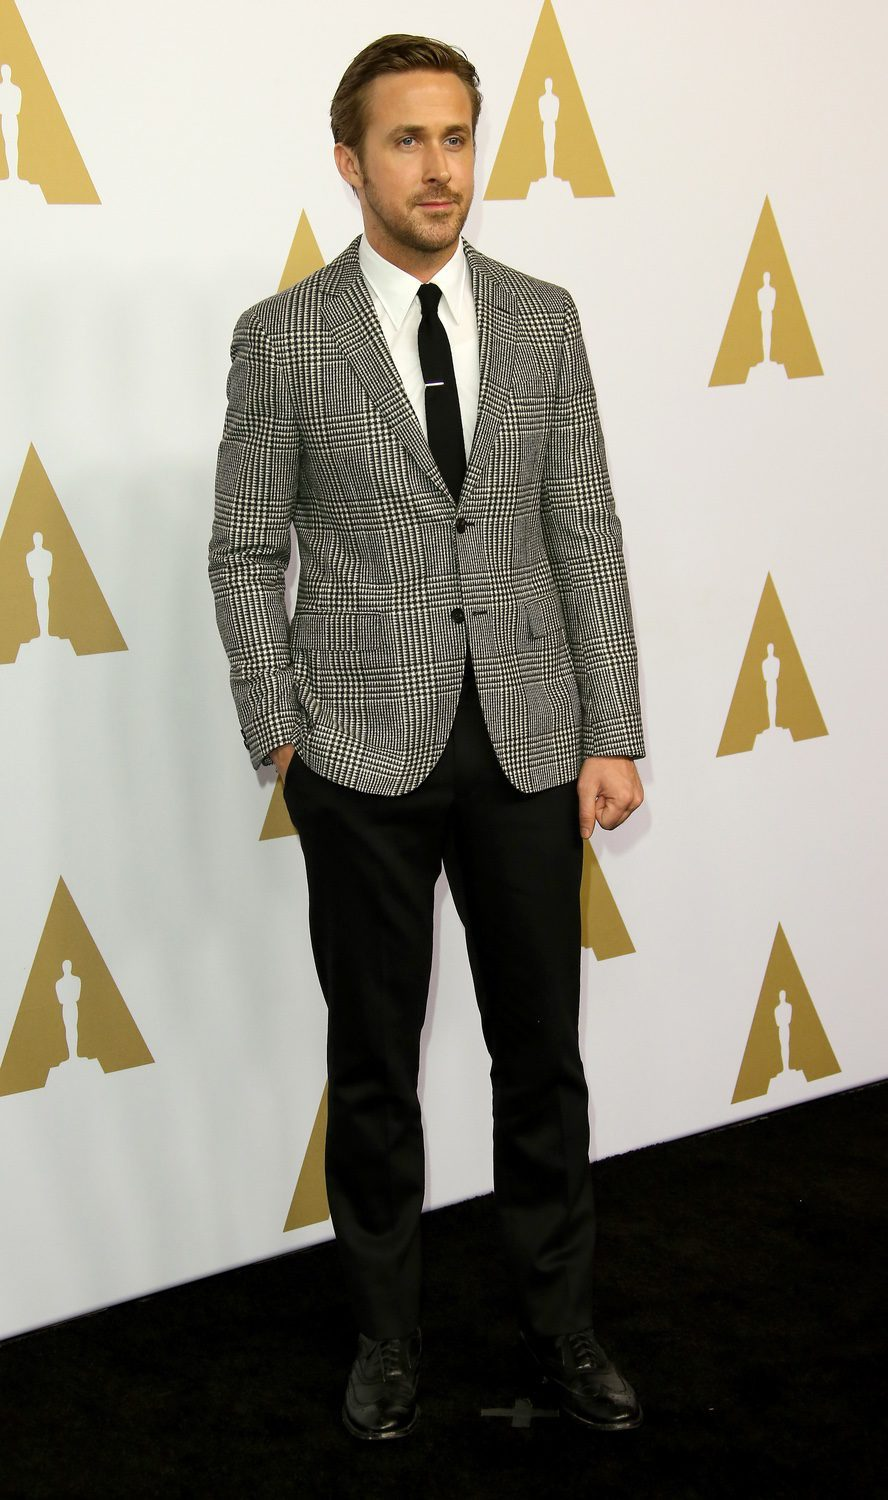 Ryan Gosling at the 2017 Annual Academy Awards Nominee Luncheon